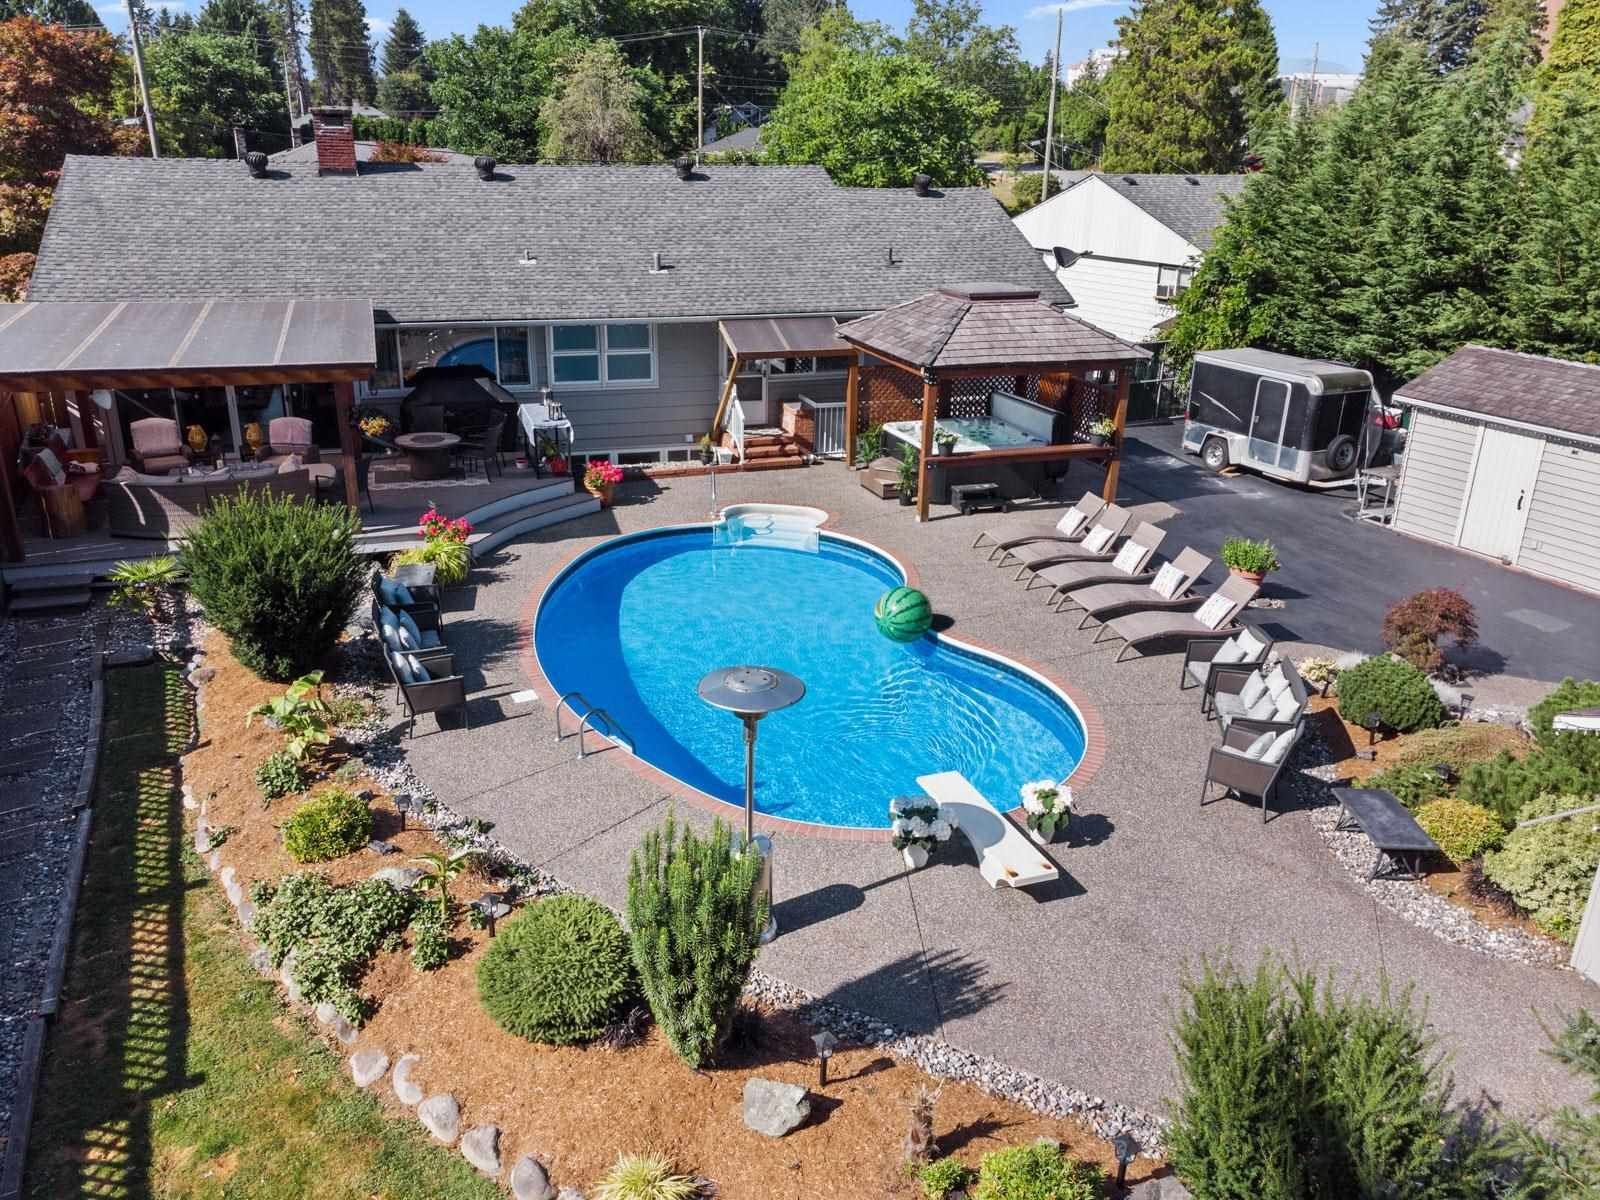 Main Photo: 22070 CLIFF Avenue in Maple Ridge: West Central House for sale : MLS®# R2606593